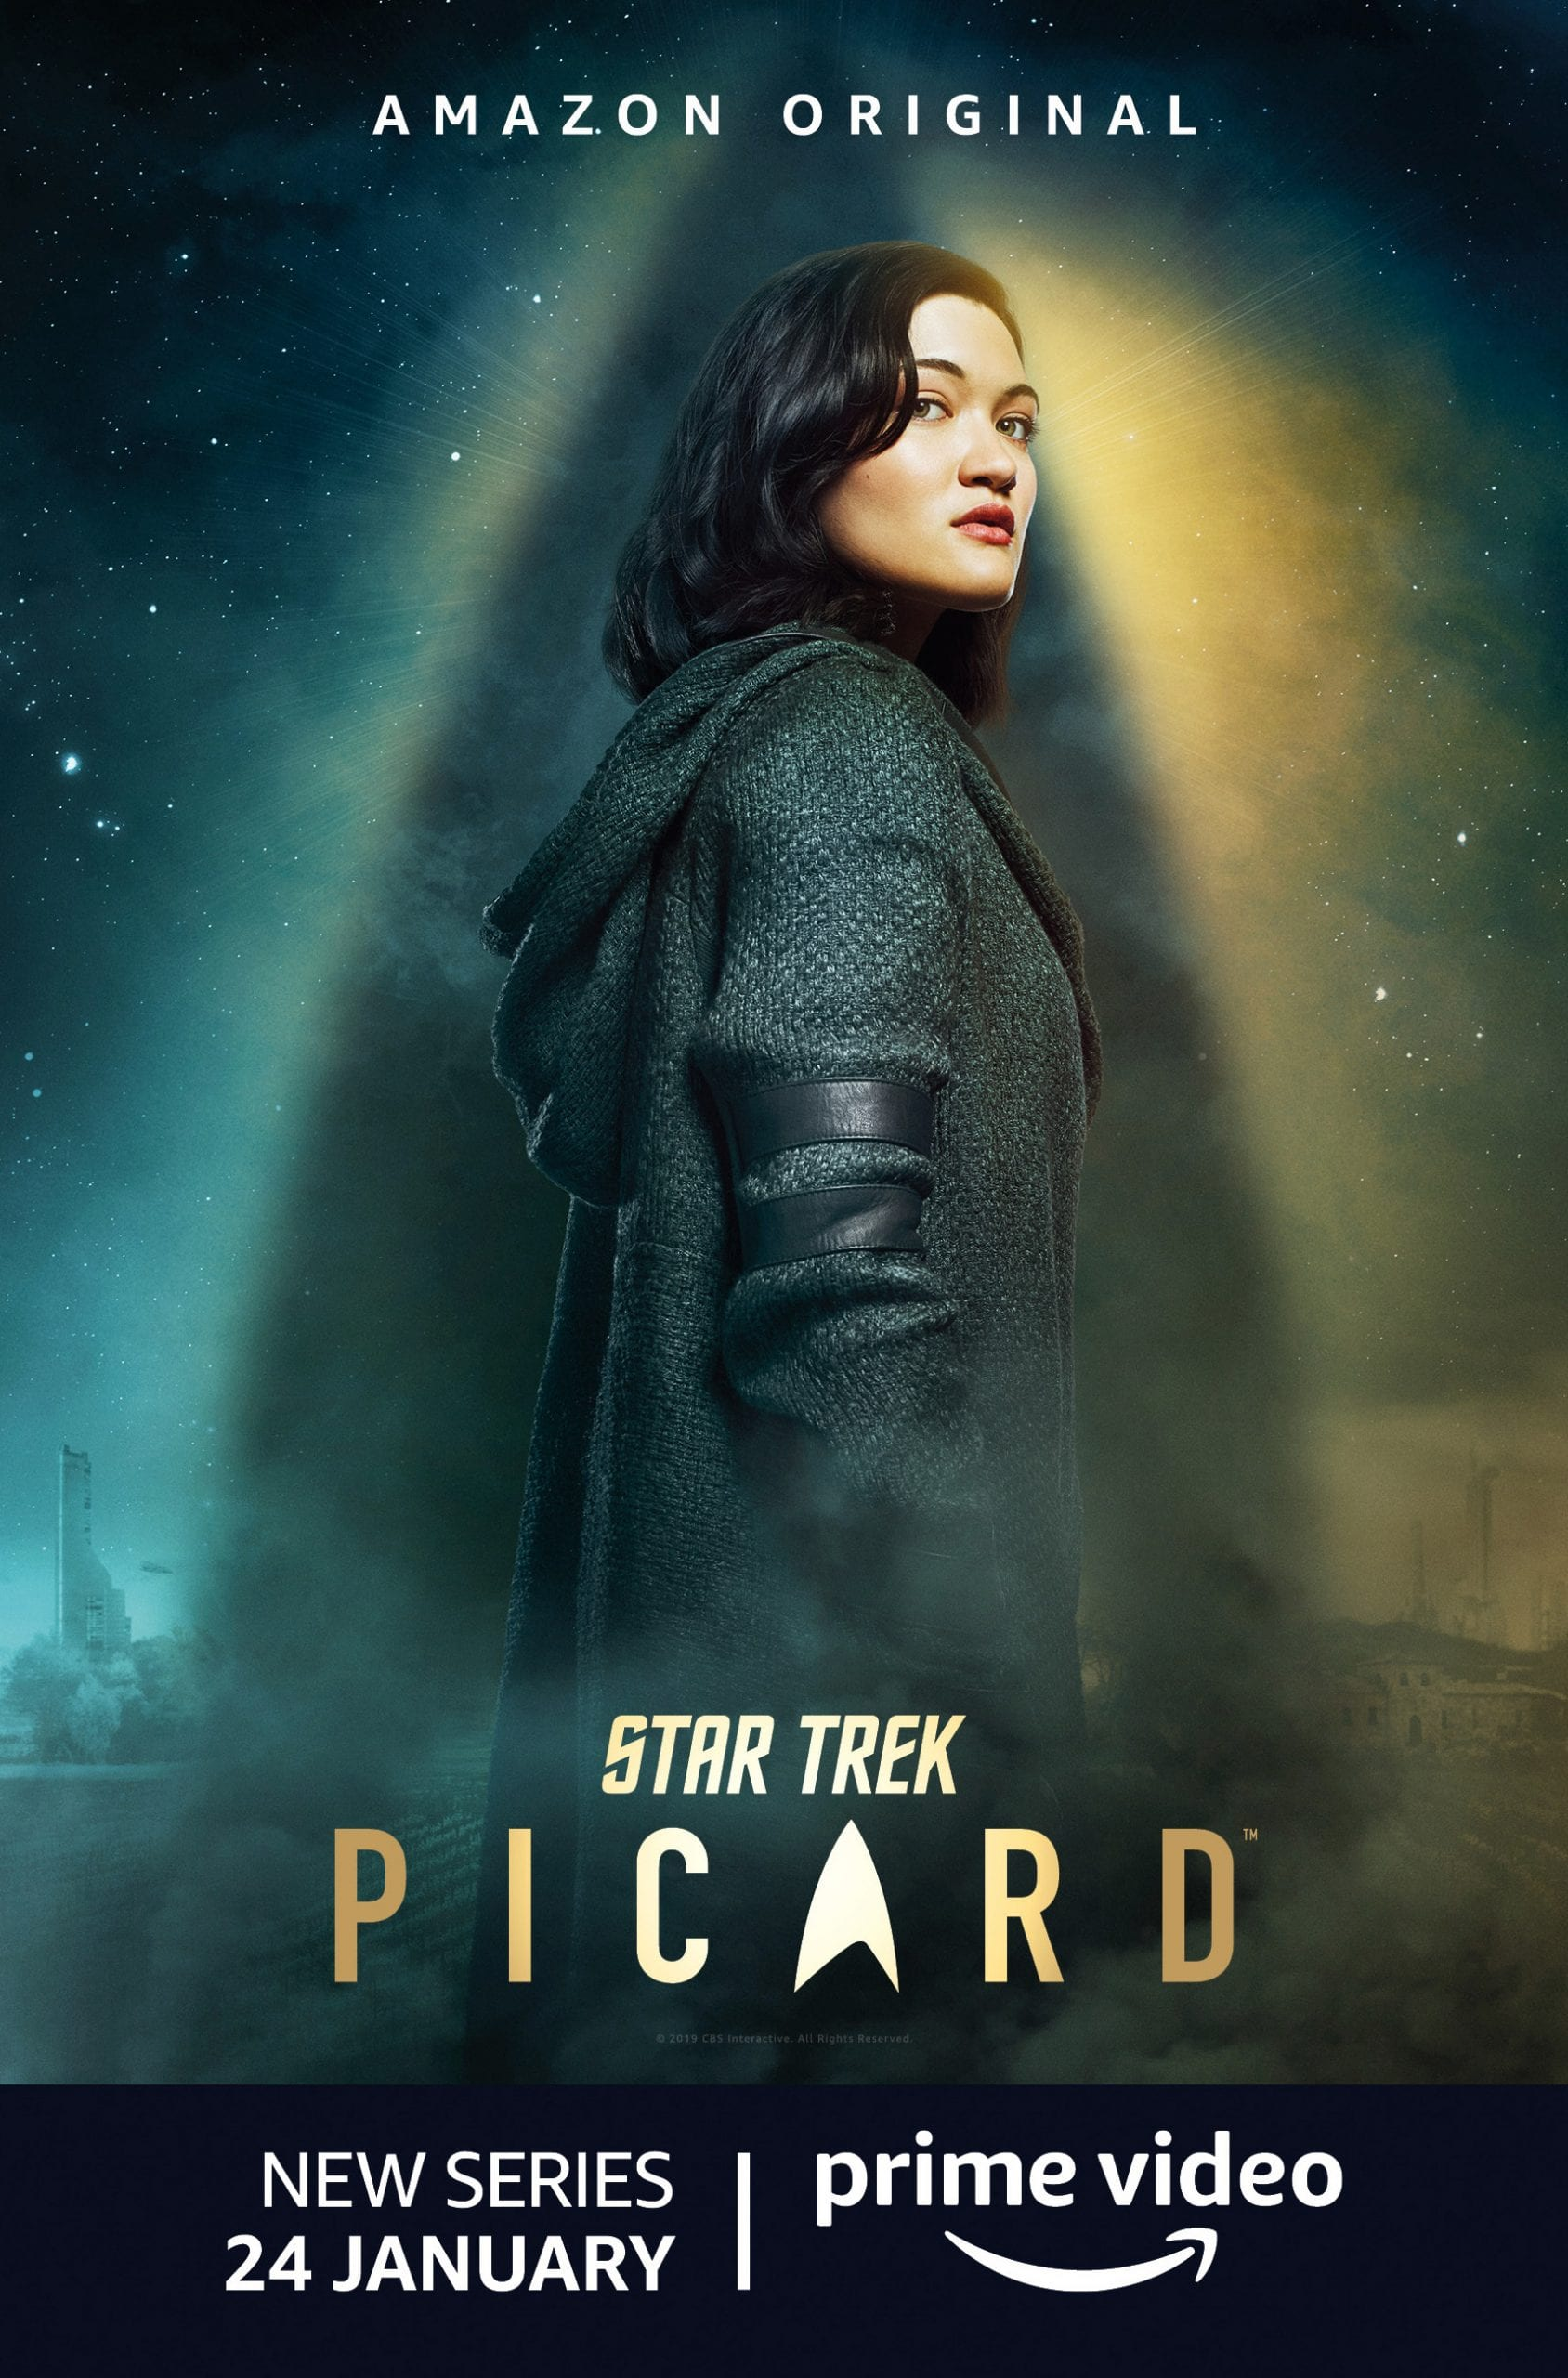 Star Trek Picard Character Posters Isa Briones as Dahj and Soji Asha